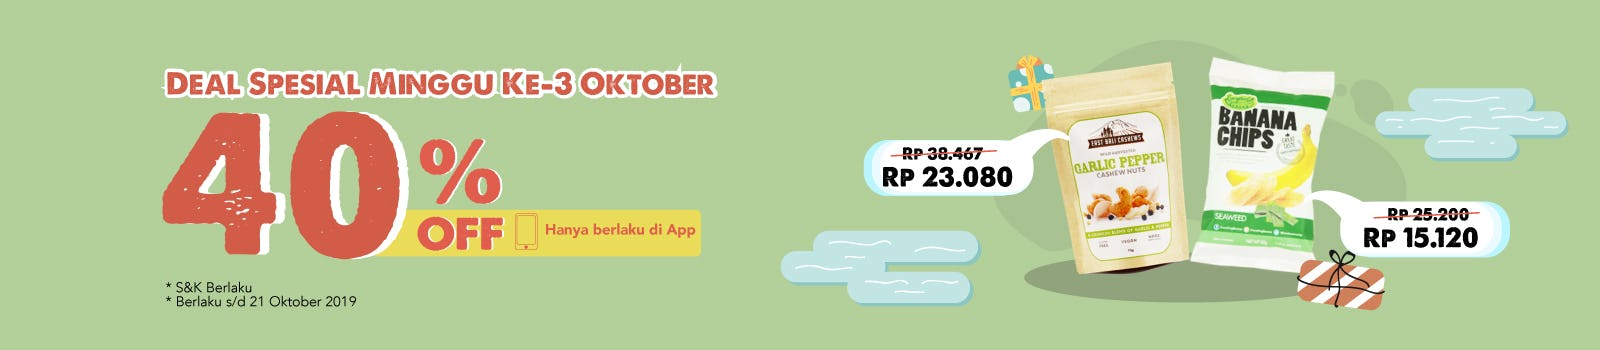 Deal Spesial W3 Oktober 40% OFF